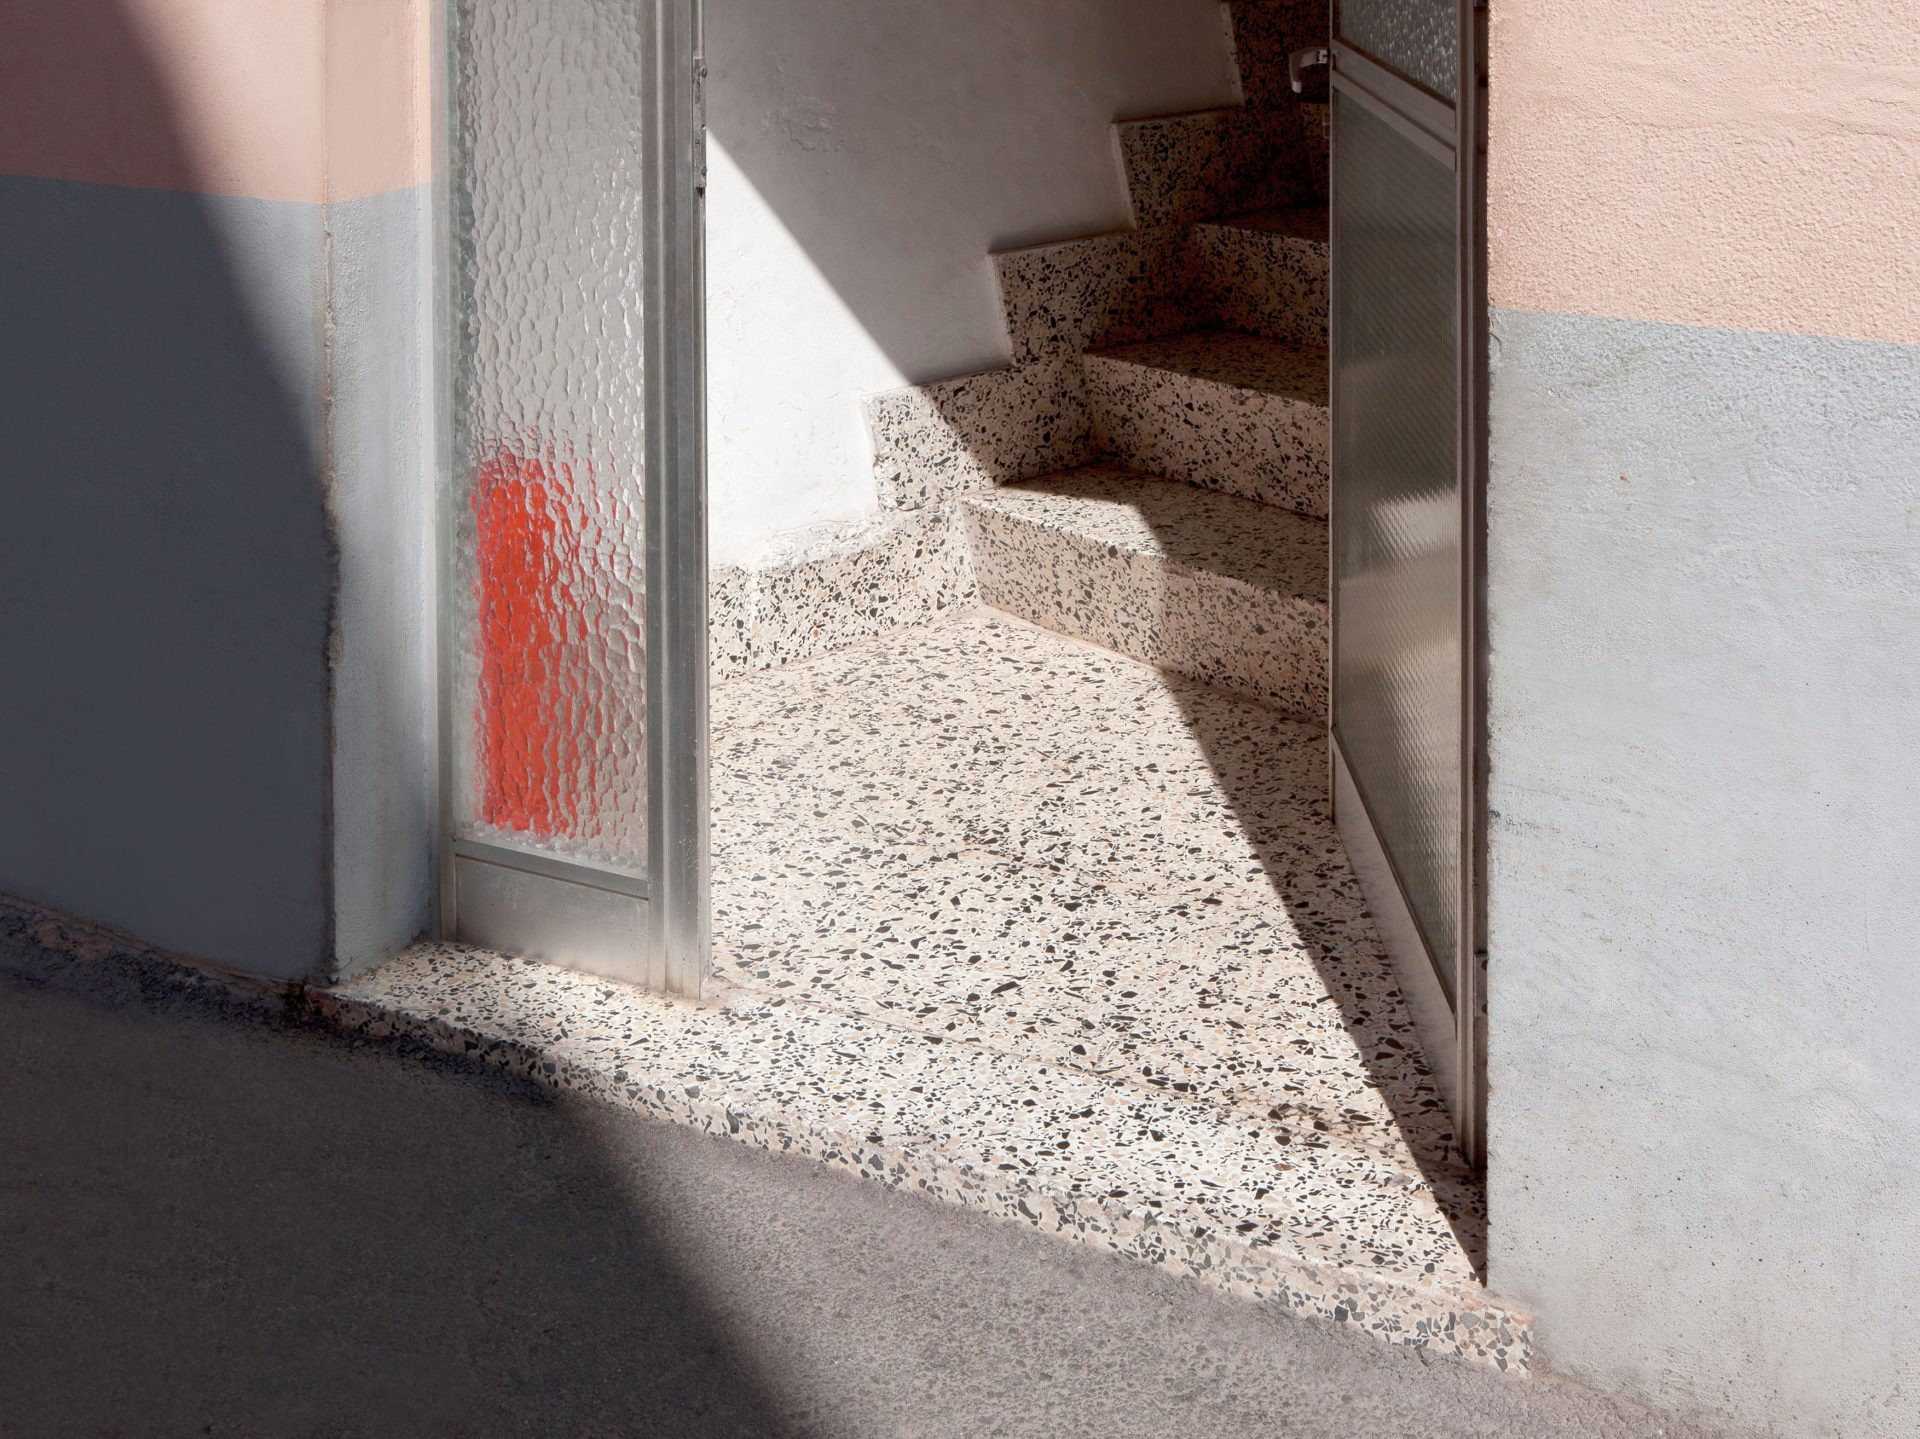 Shaw & Shaw – Doorway in shadow – Shaw and Shaw Advertising photographers photographer photography